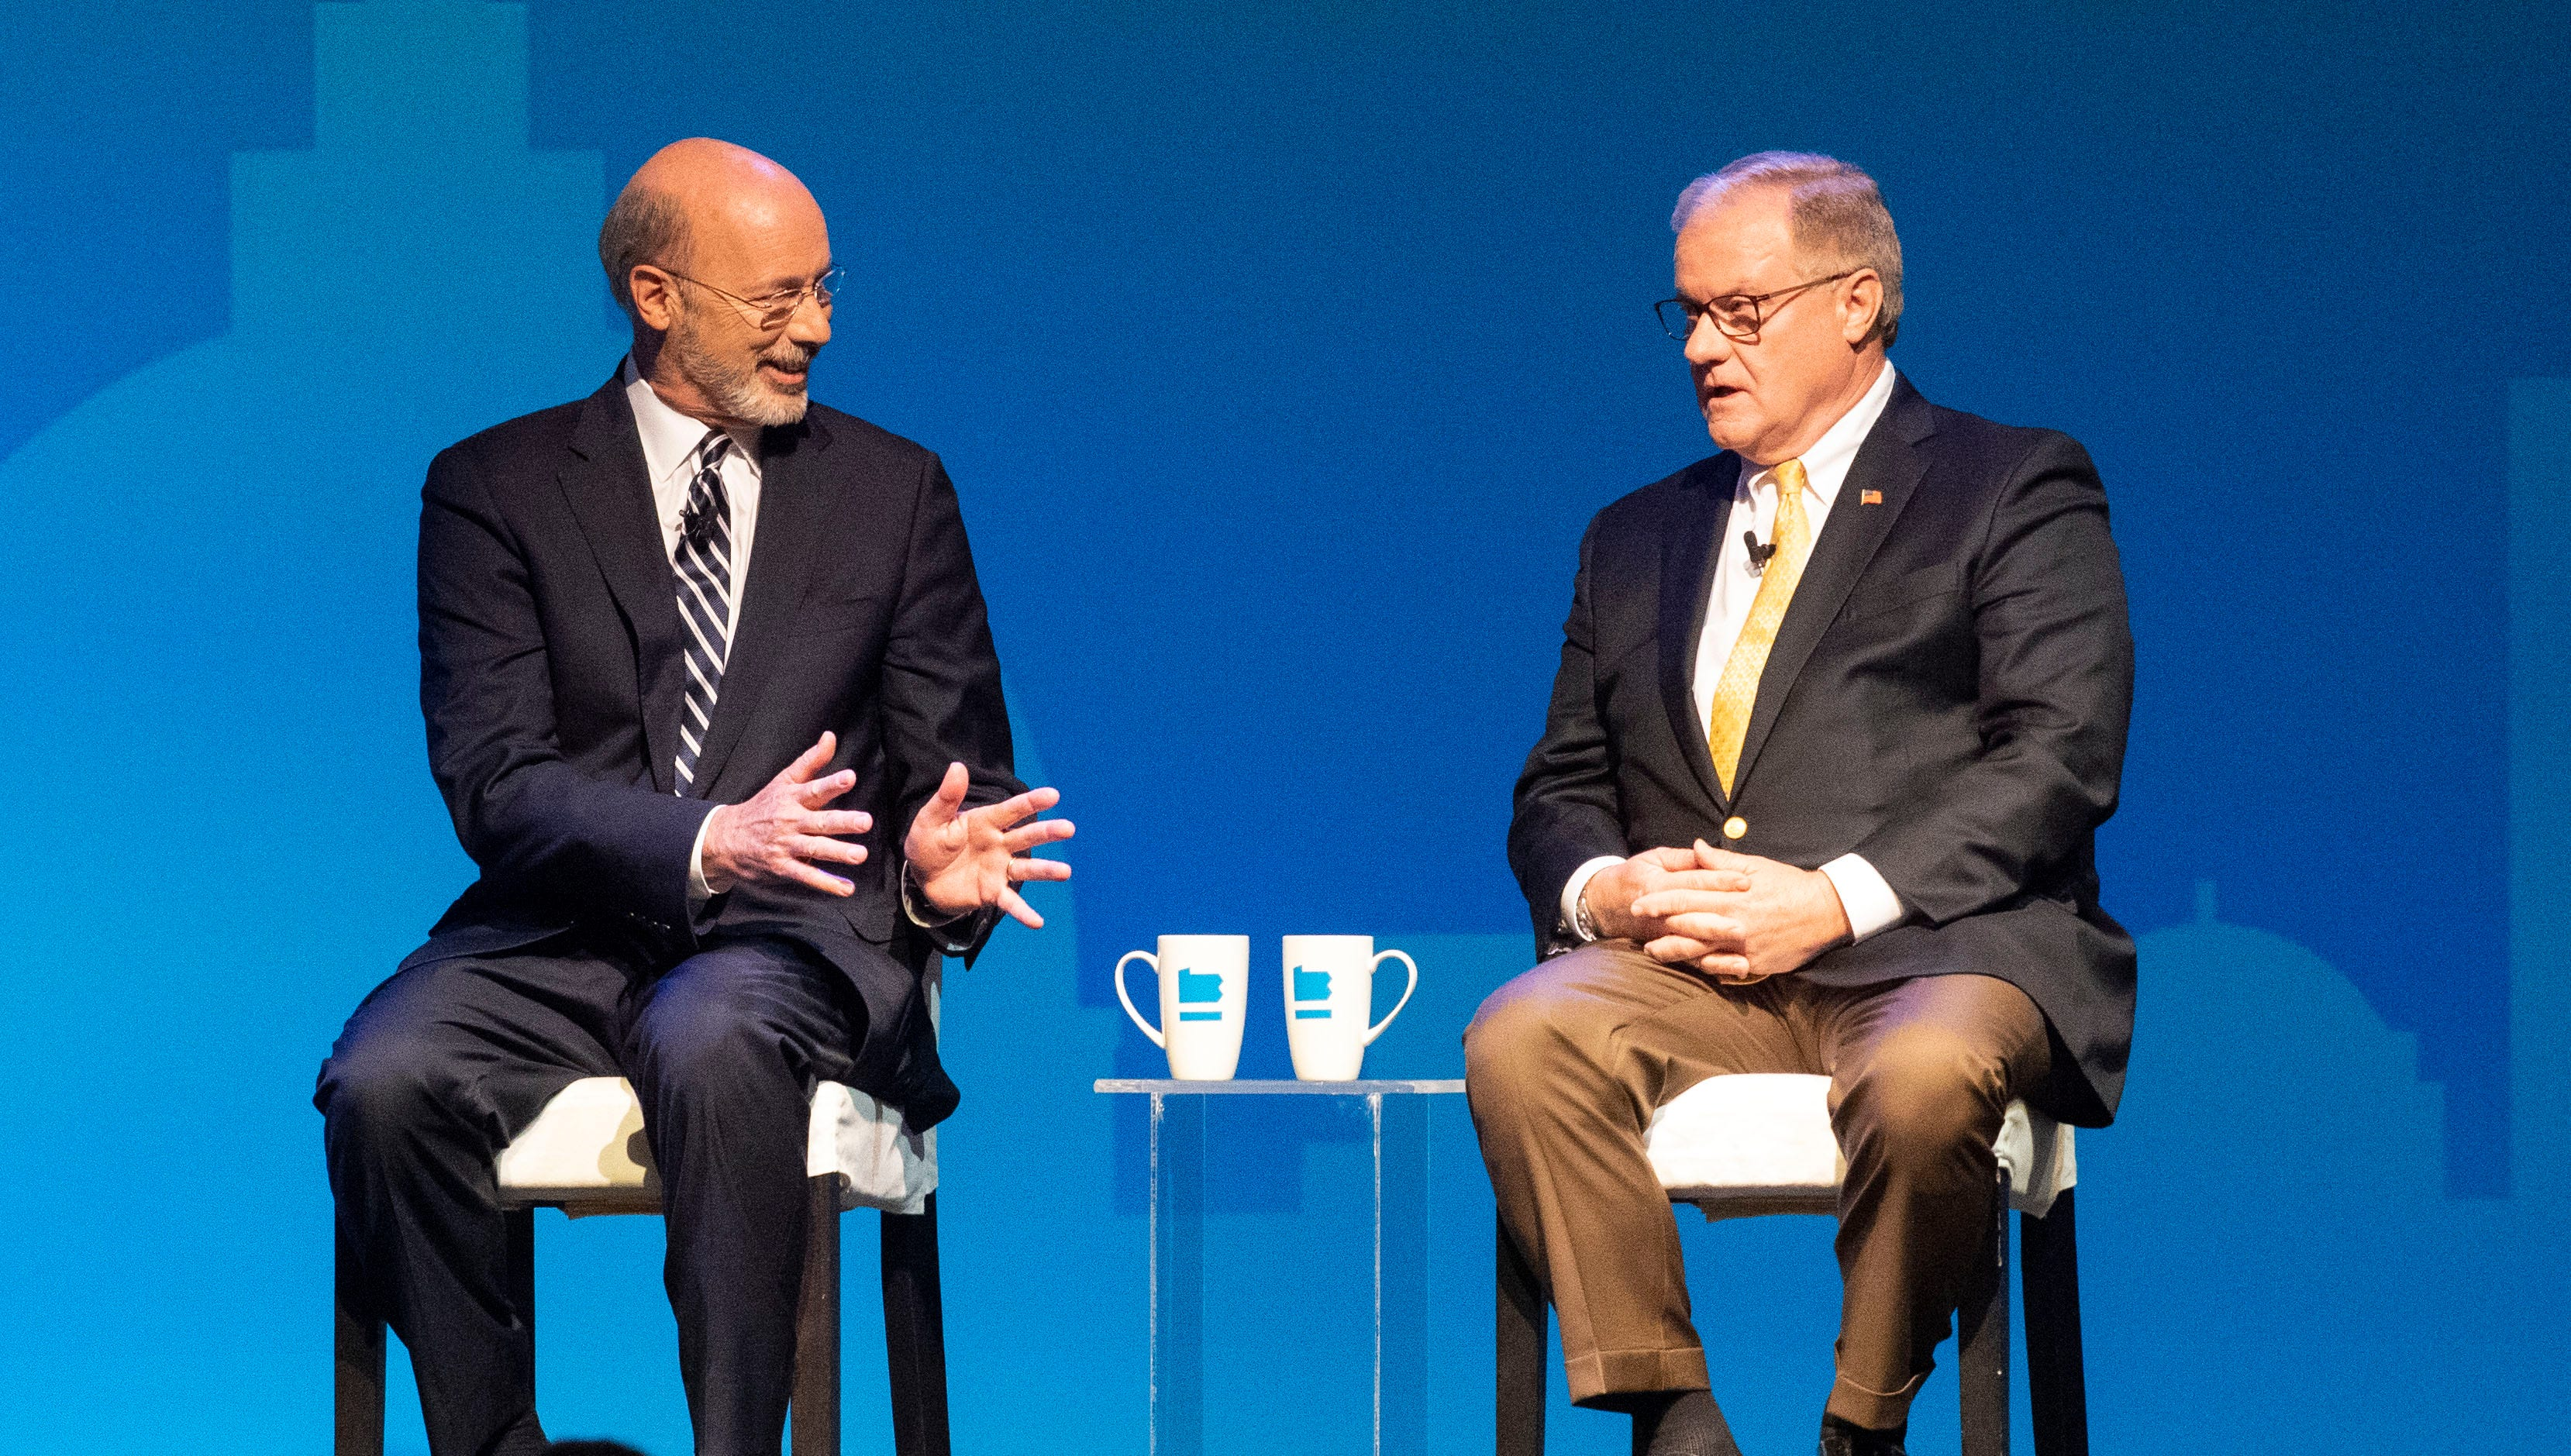 Gov. Tom Wolf vs. Scott Wagner: Your guide to the 2018 Pa. governor race